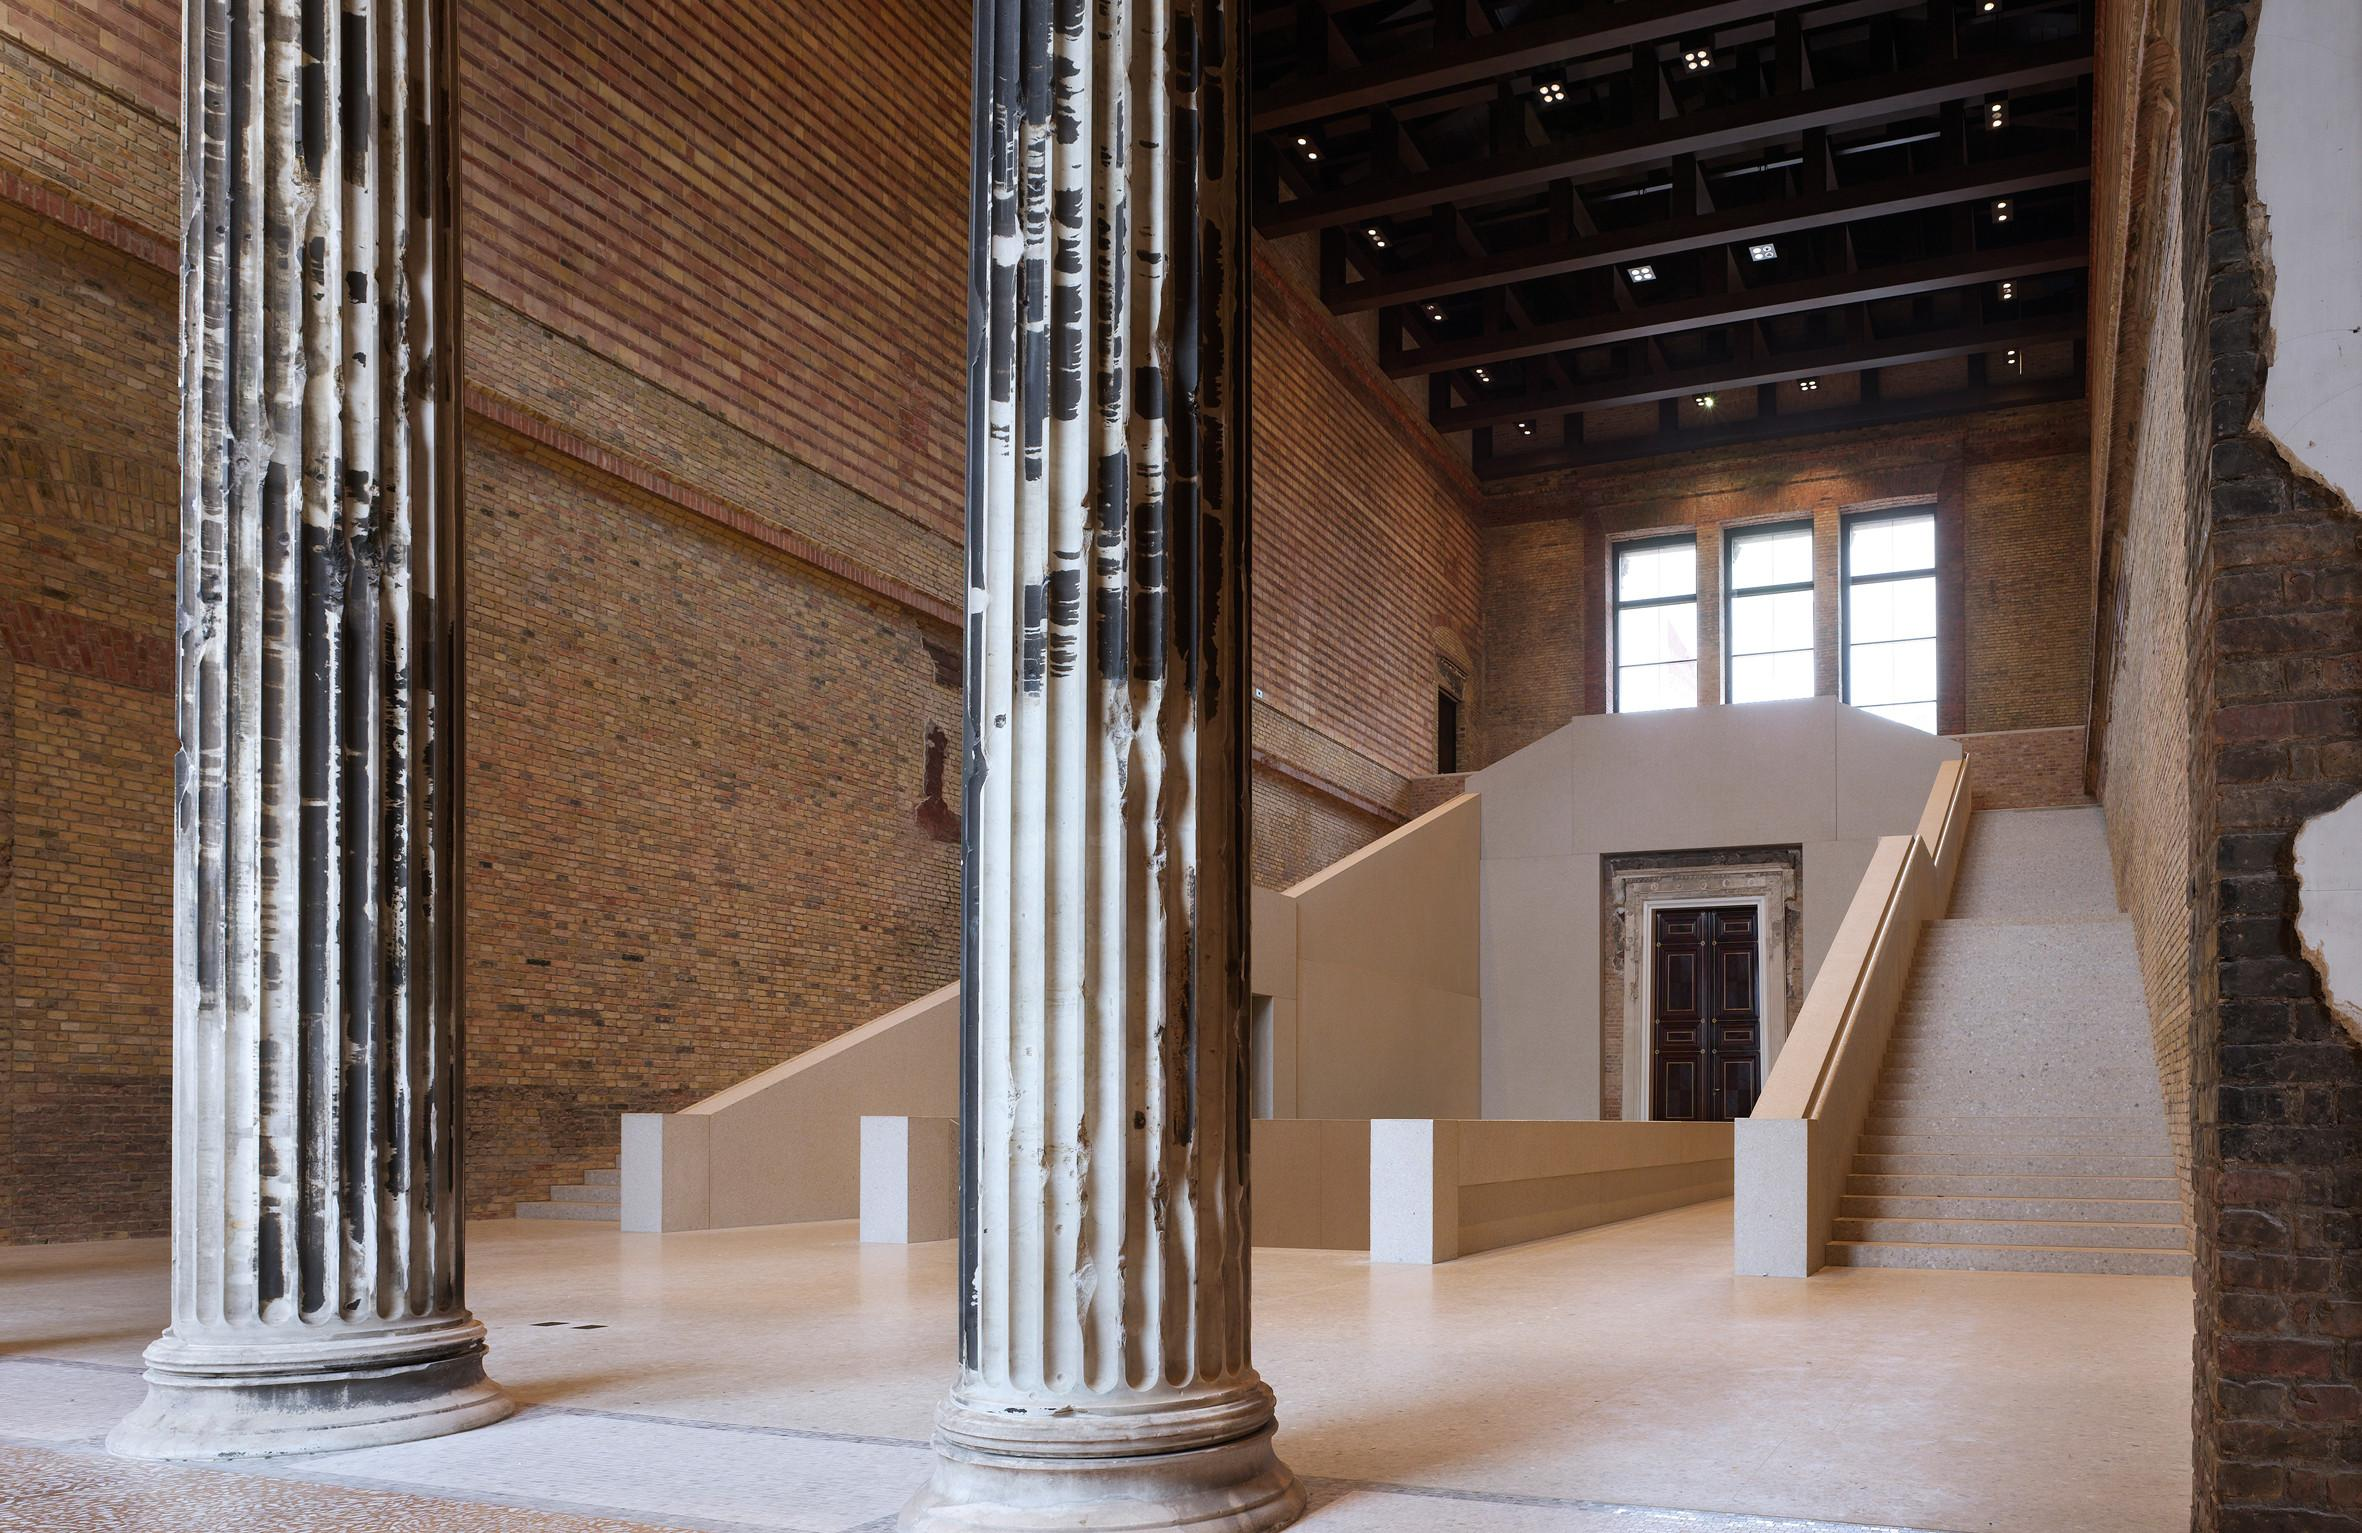 Neues Museum David Chipperfield Architects Berlin